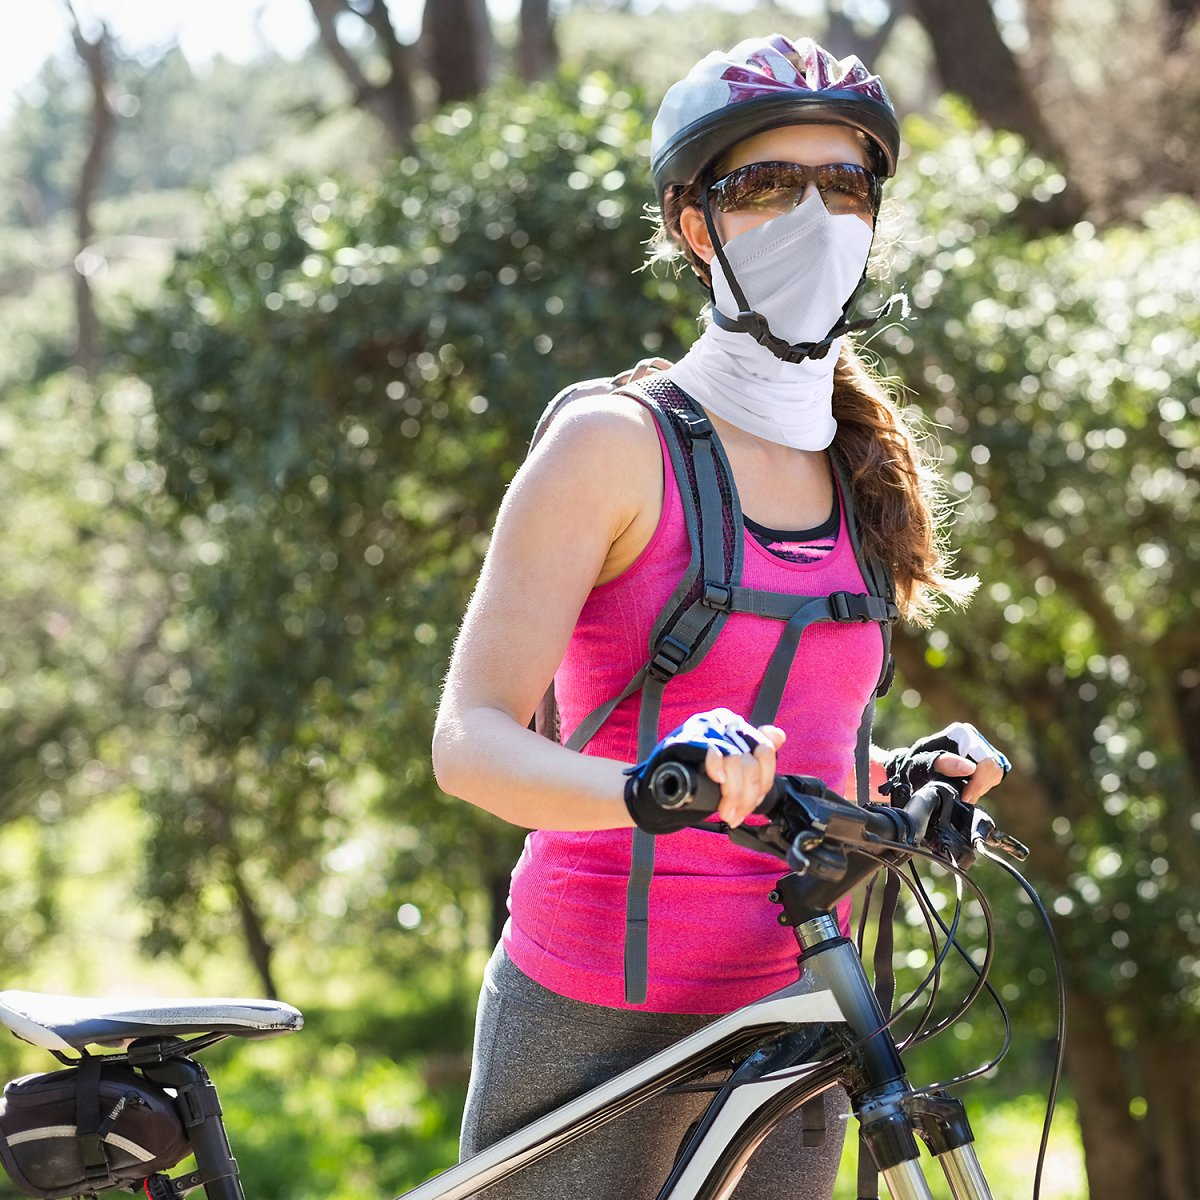 Save 10% On Summer Face Mask Neck Gaiter with Prime Promotion On Amazon.com